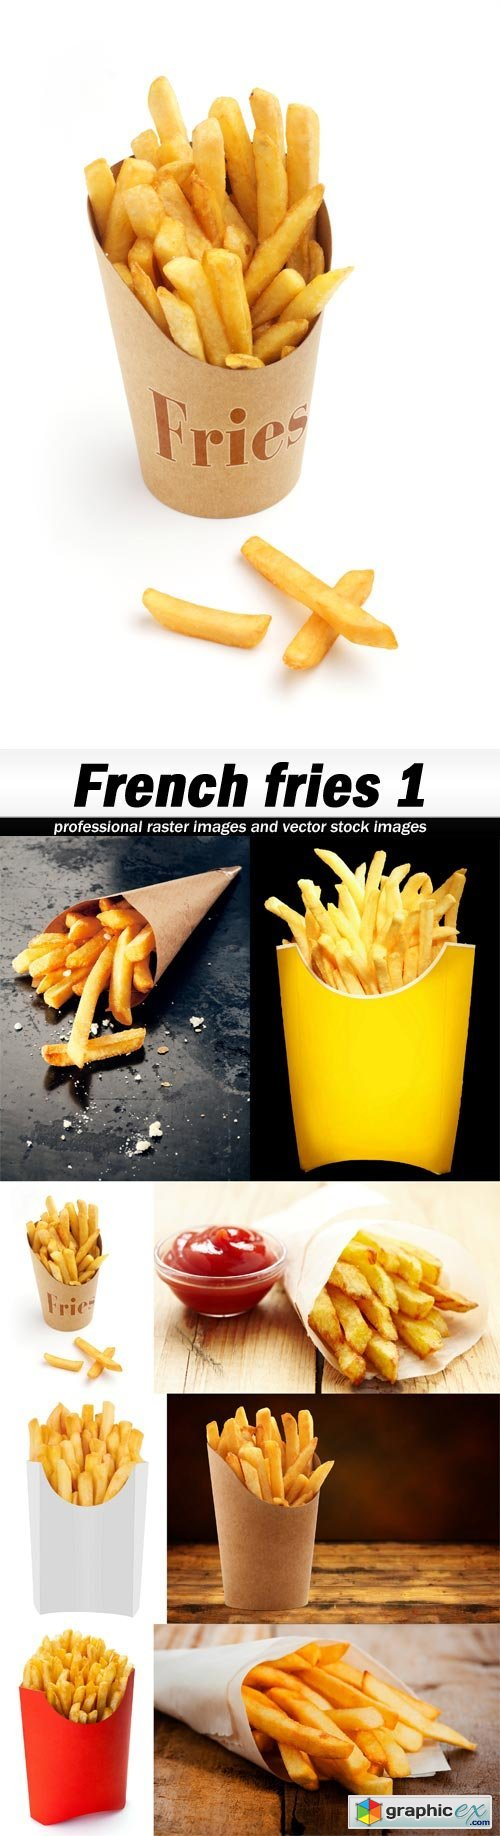 French fries 1